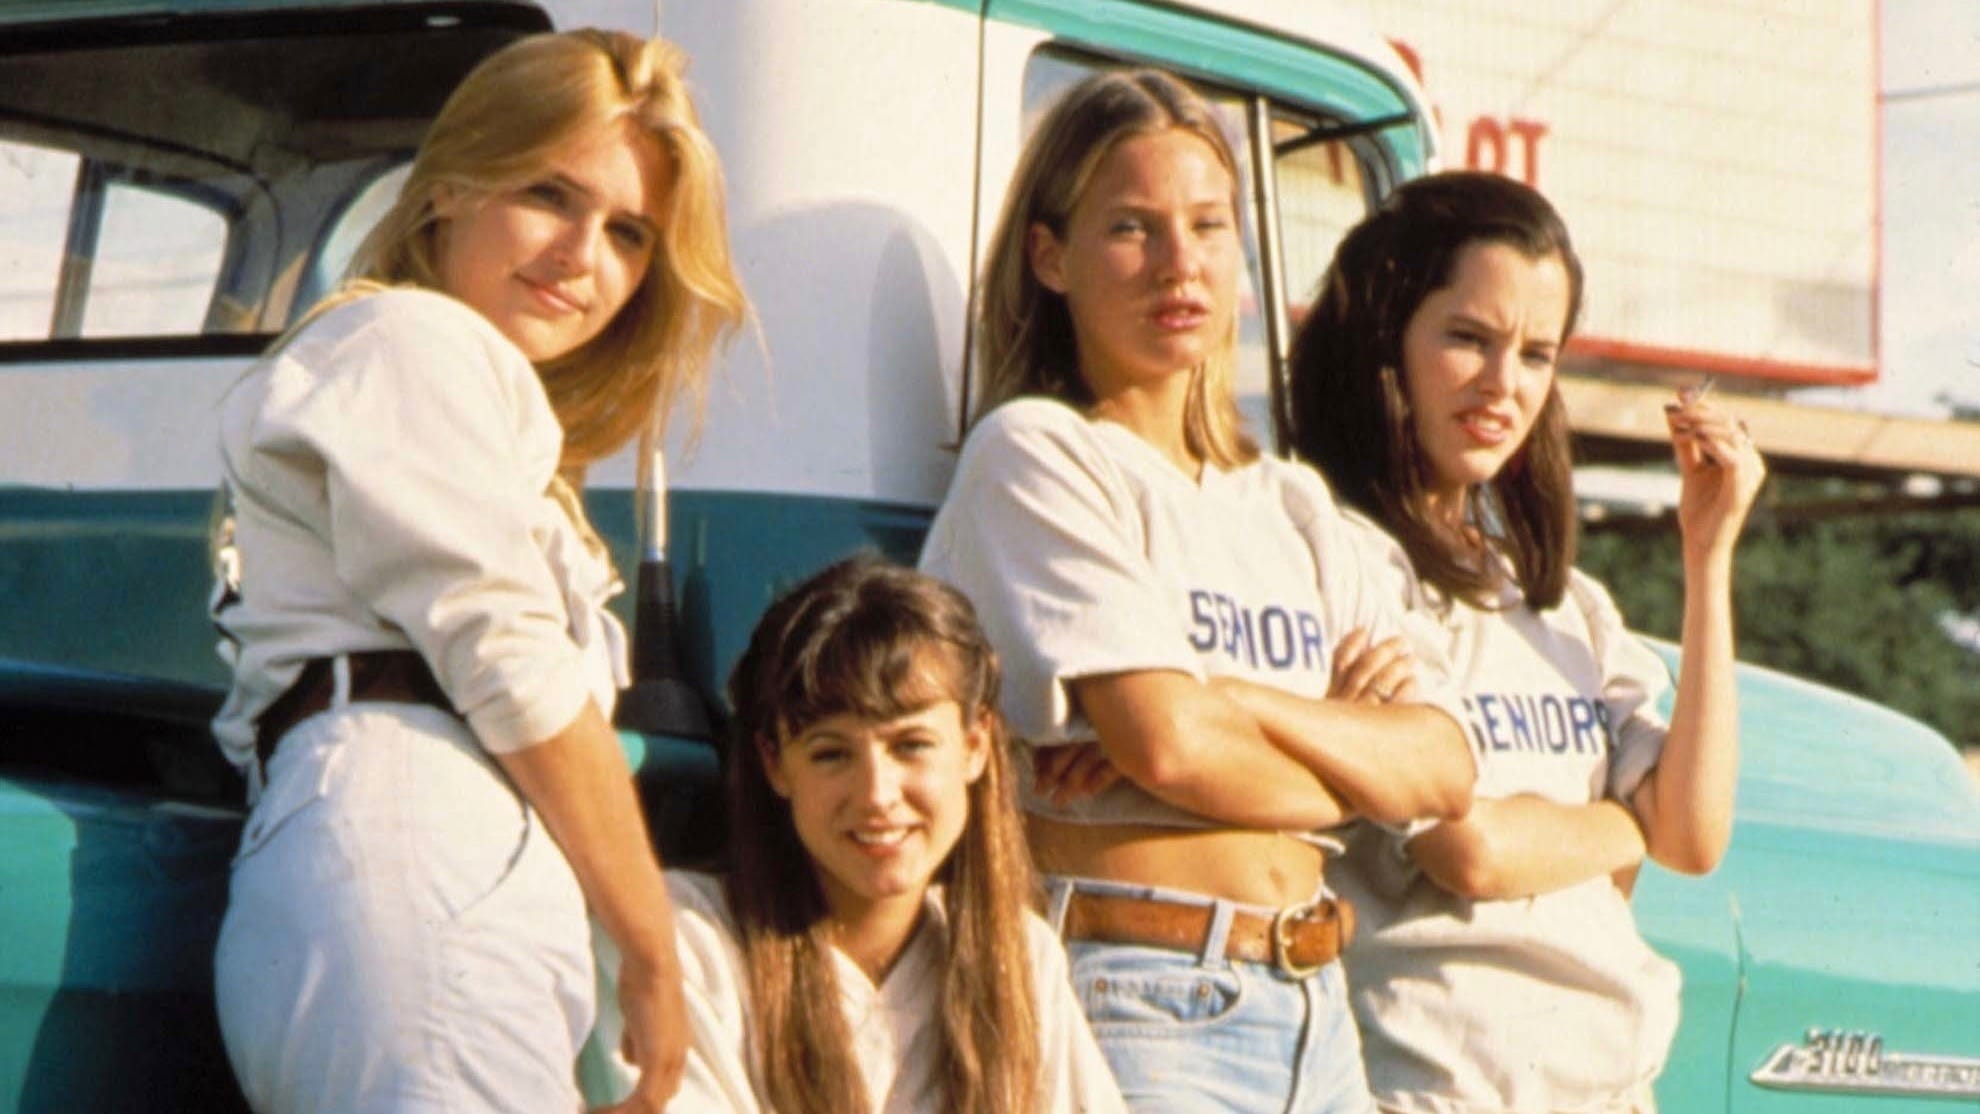 dazed and confused wiki synopsis reviews movies rankings